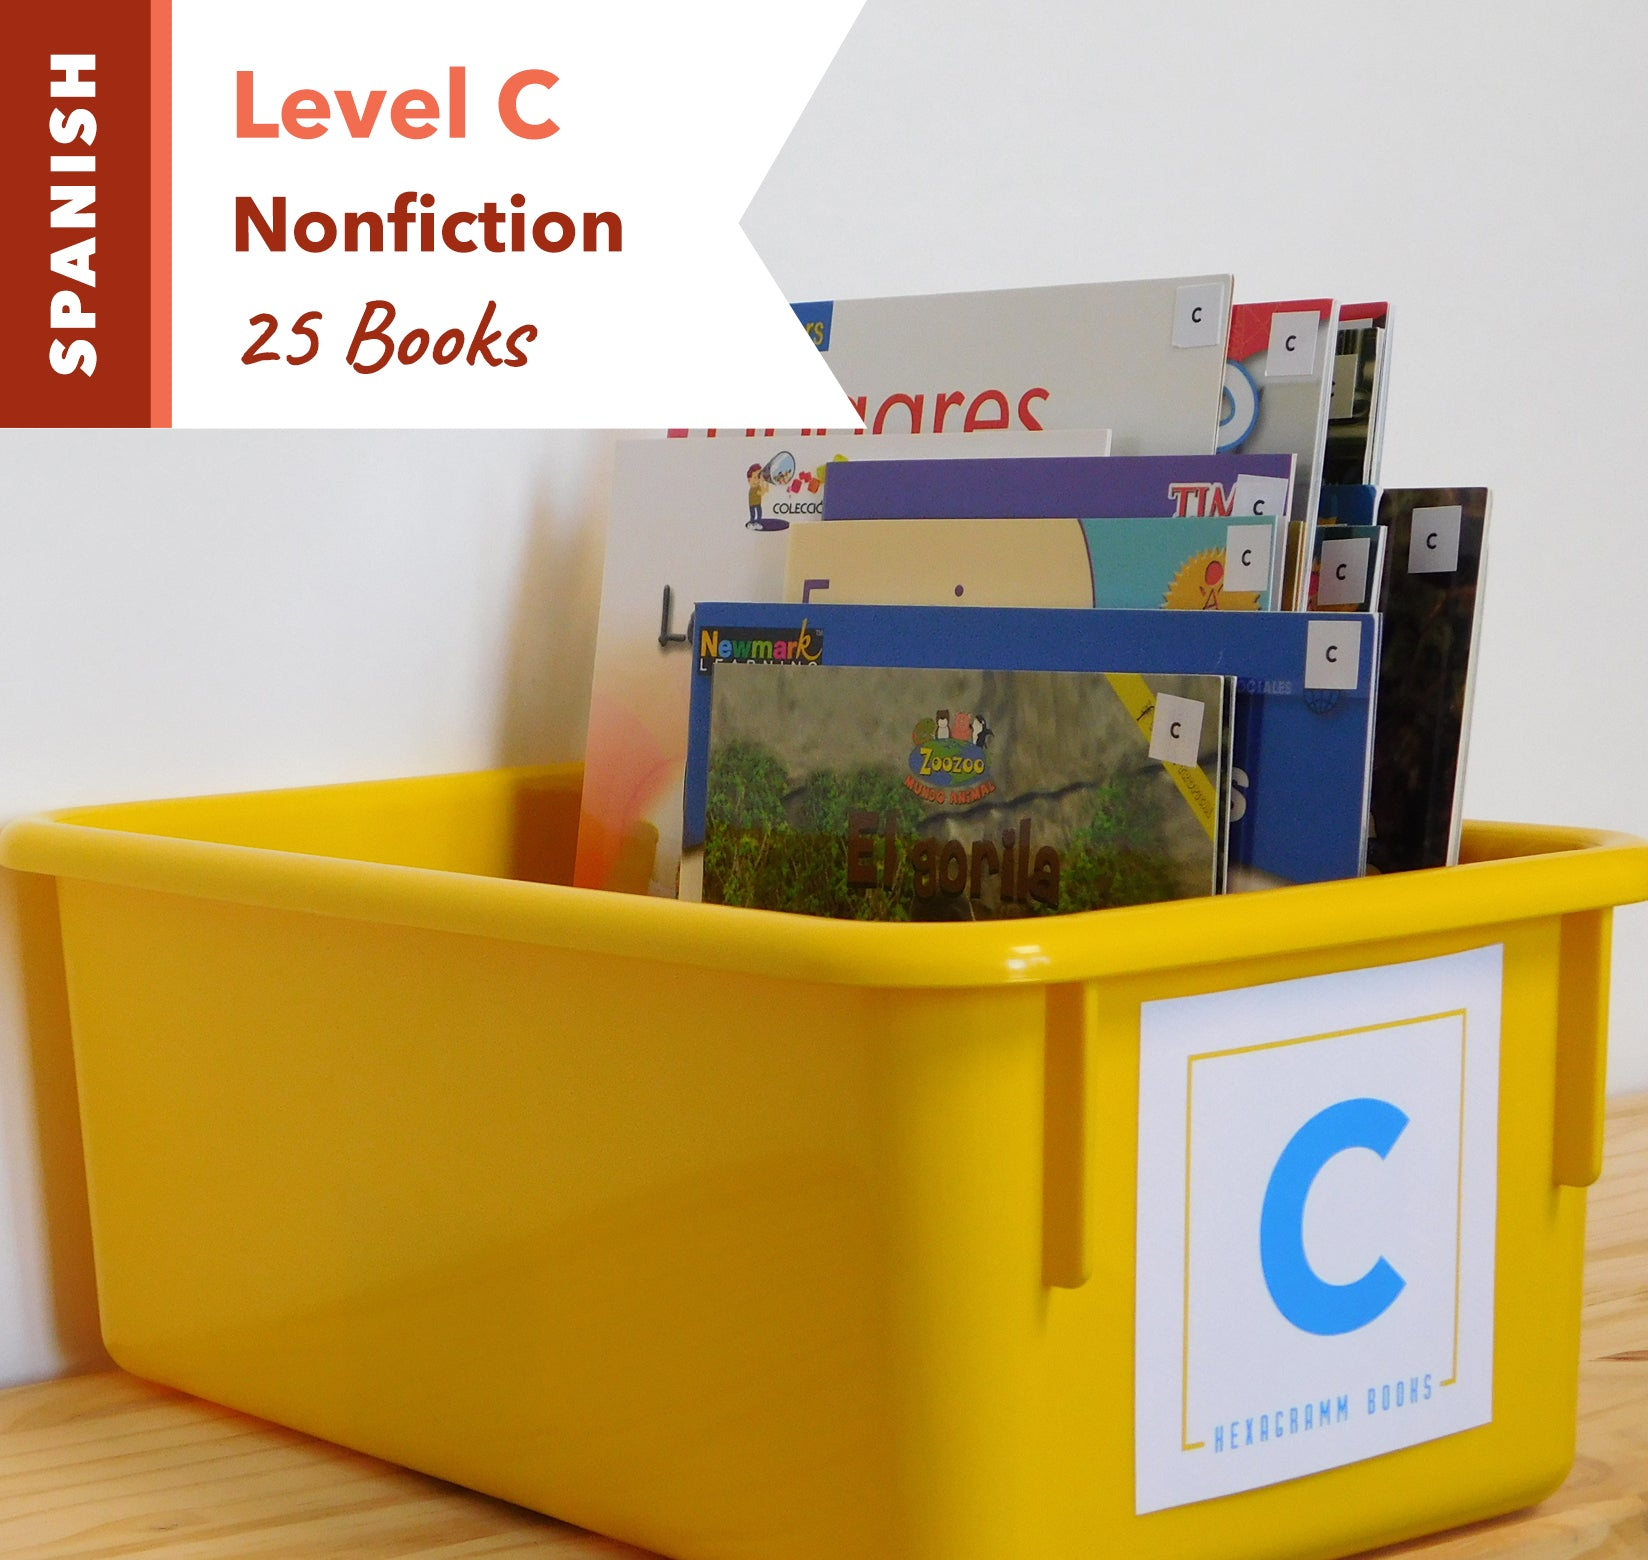 Level C, Bundle of 25 (Nonfiction) Spanish